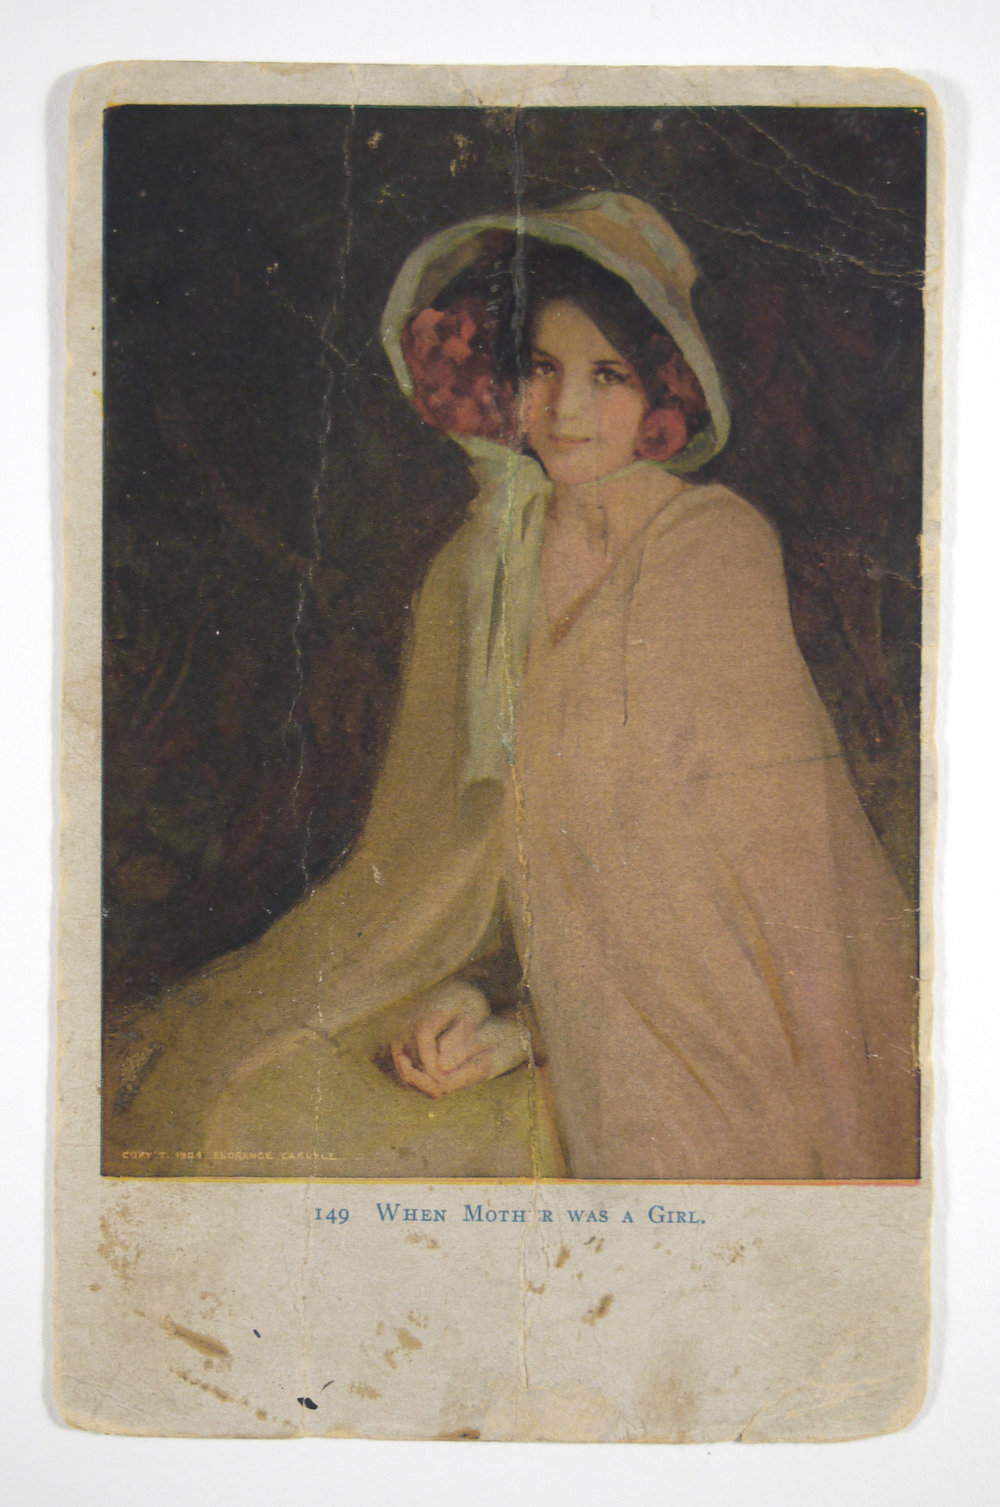 Florence Carlyle postcard after conservation treatment.